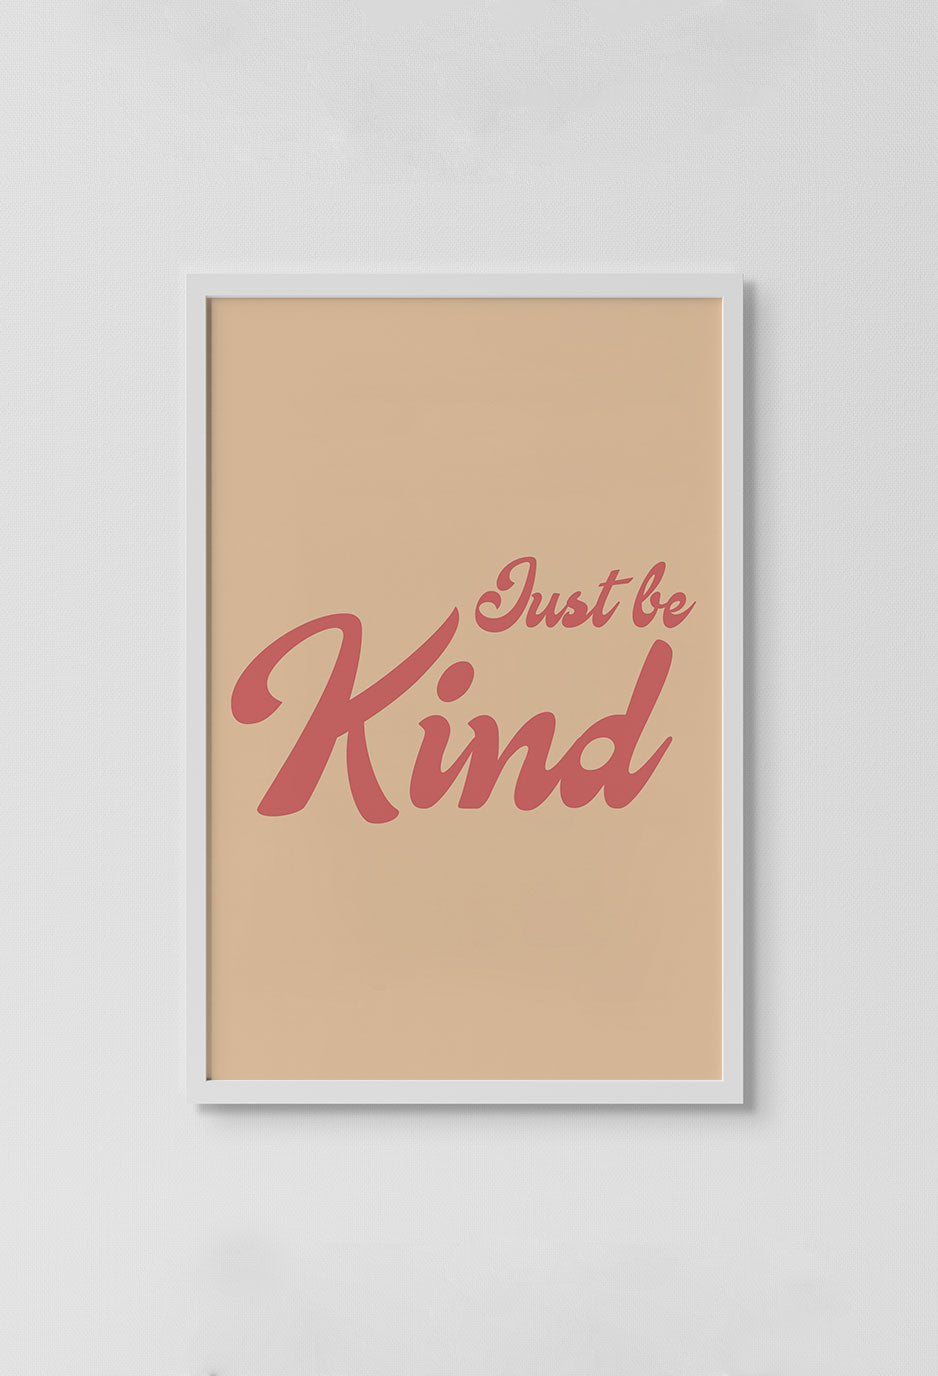 image of orange print with just be kind words in pink in frame on white wall